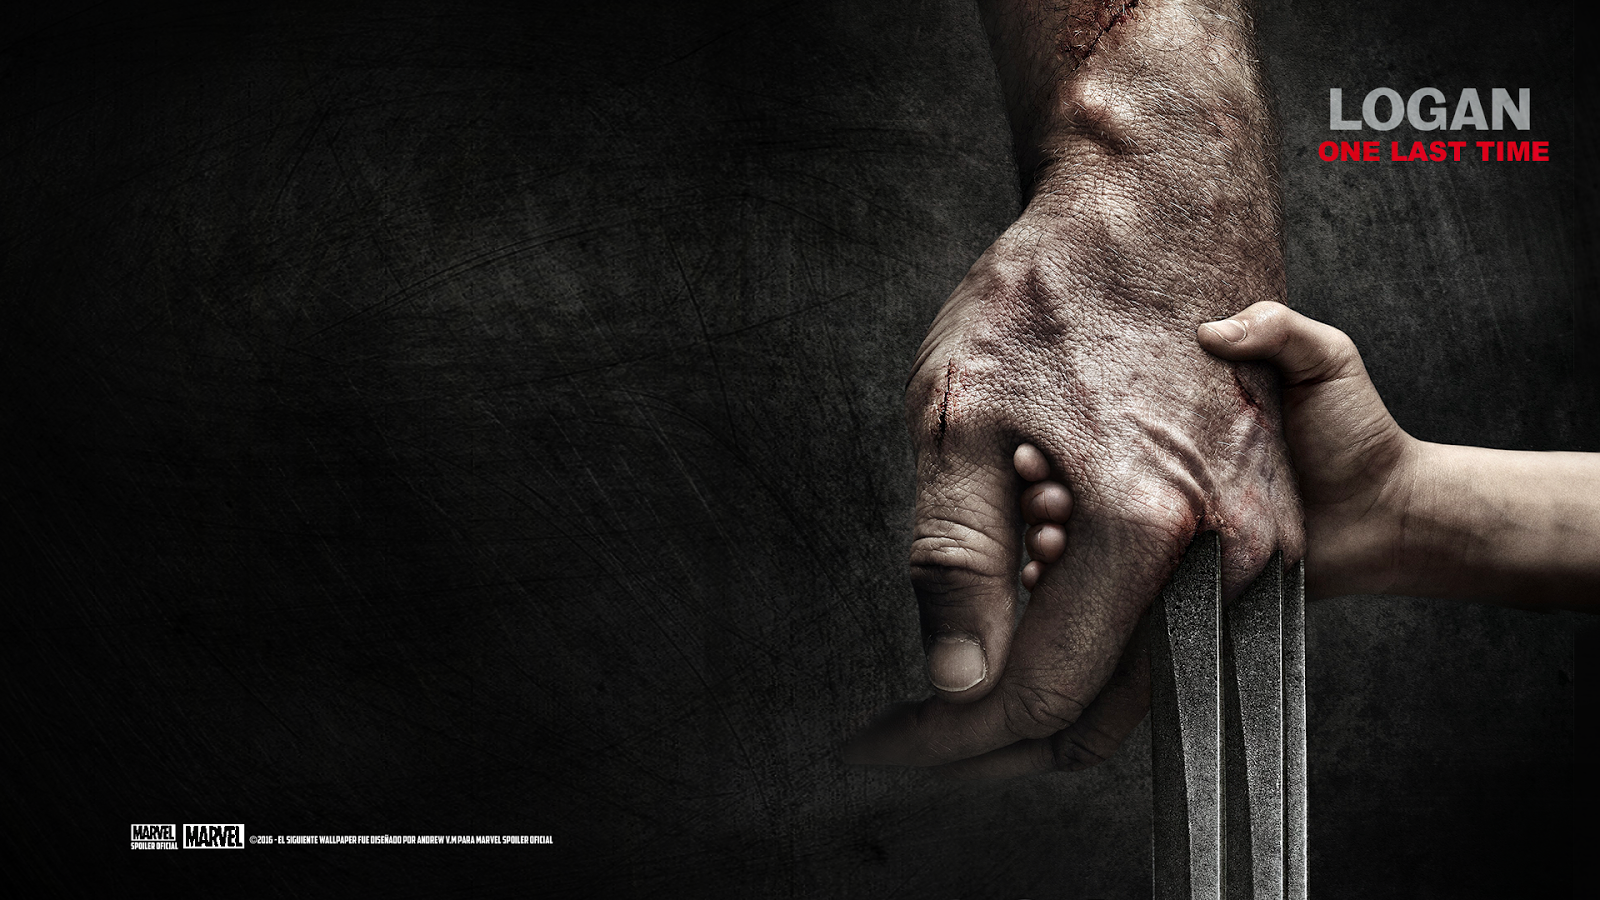 Logan 2017 Movie Hd Wallpaper: Advertise